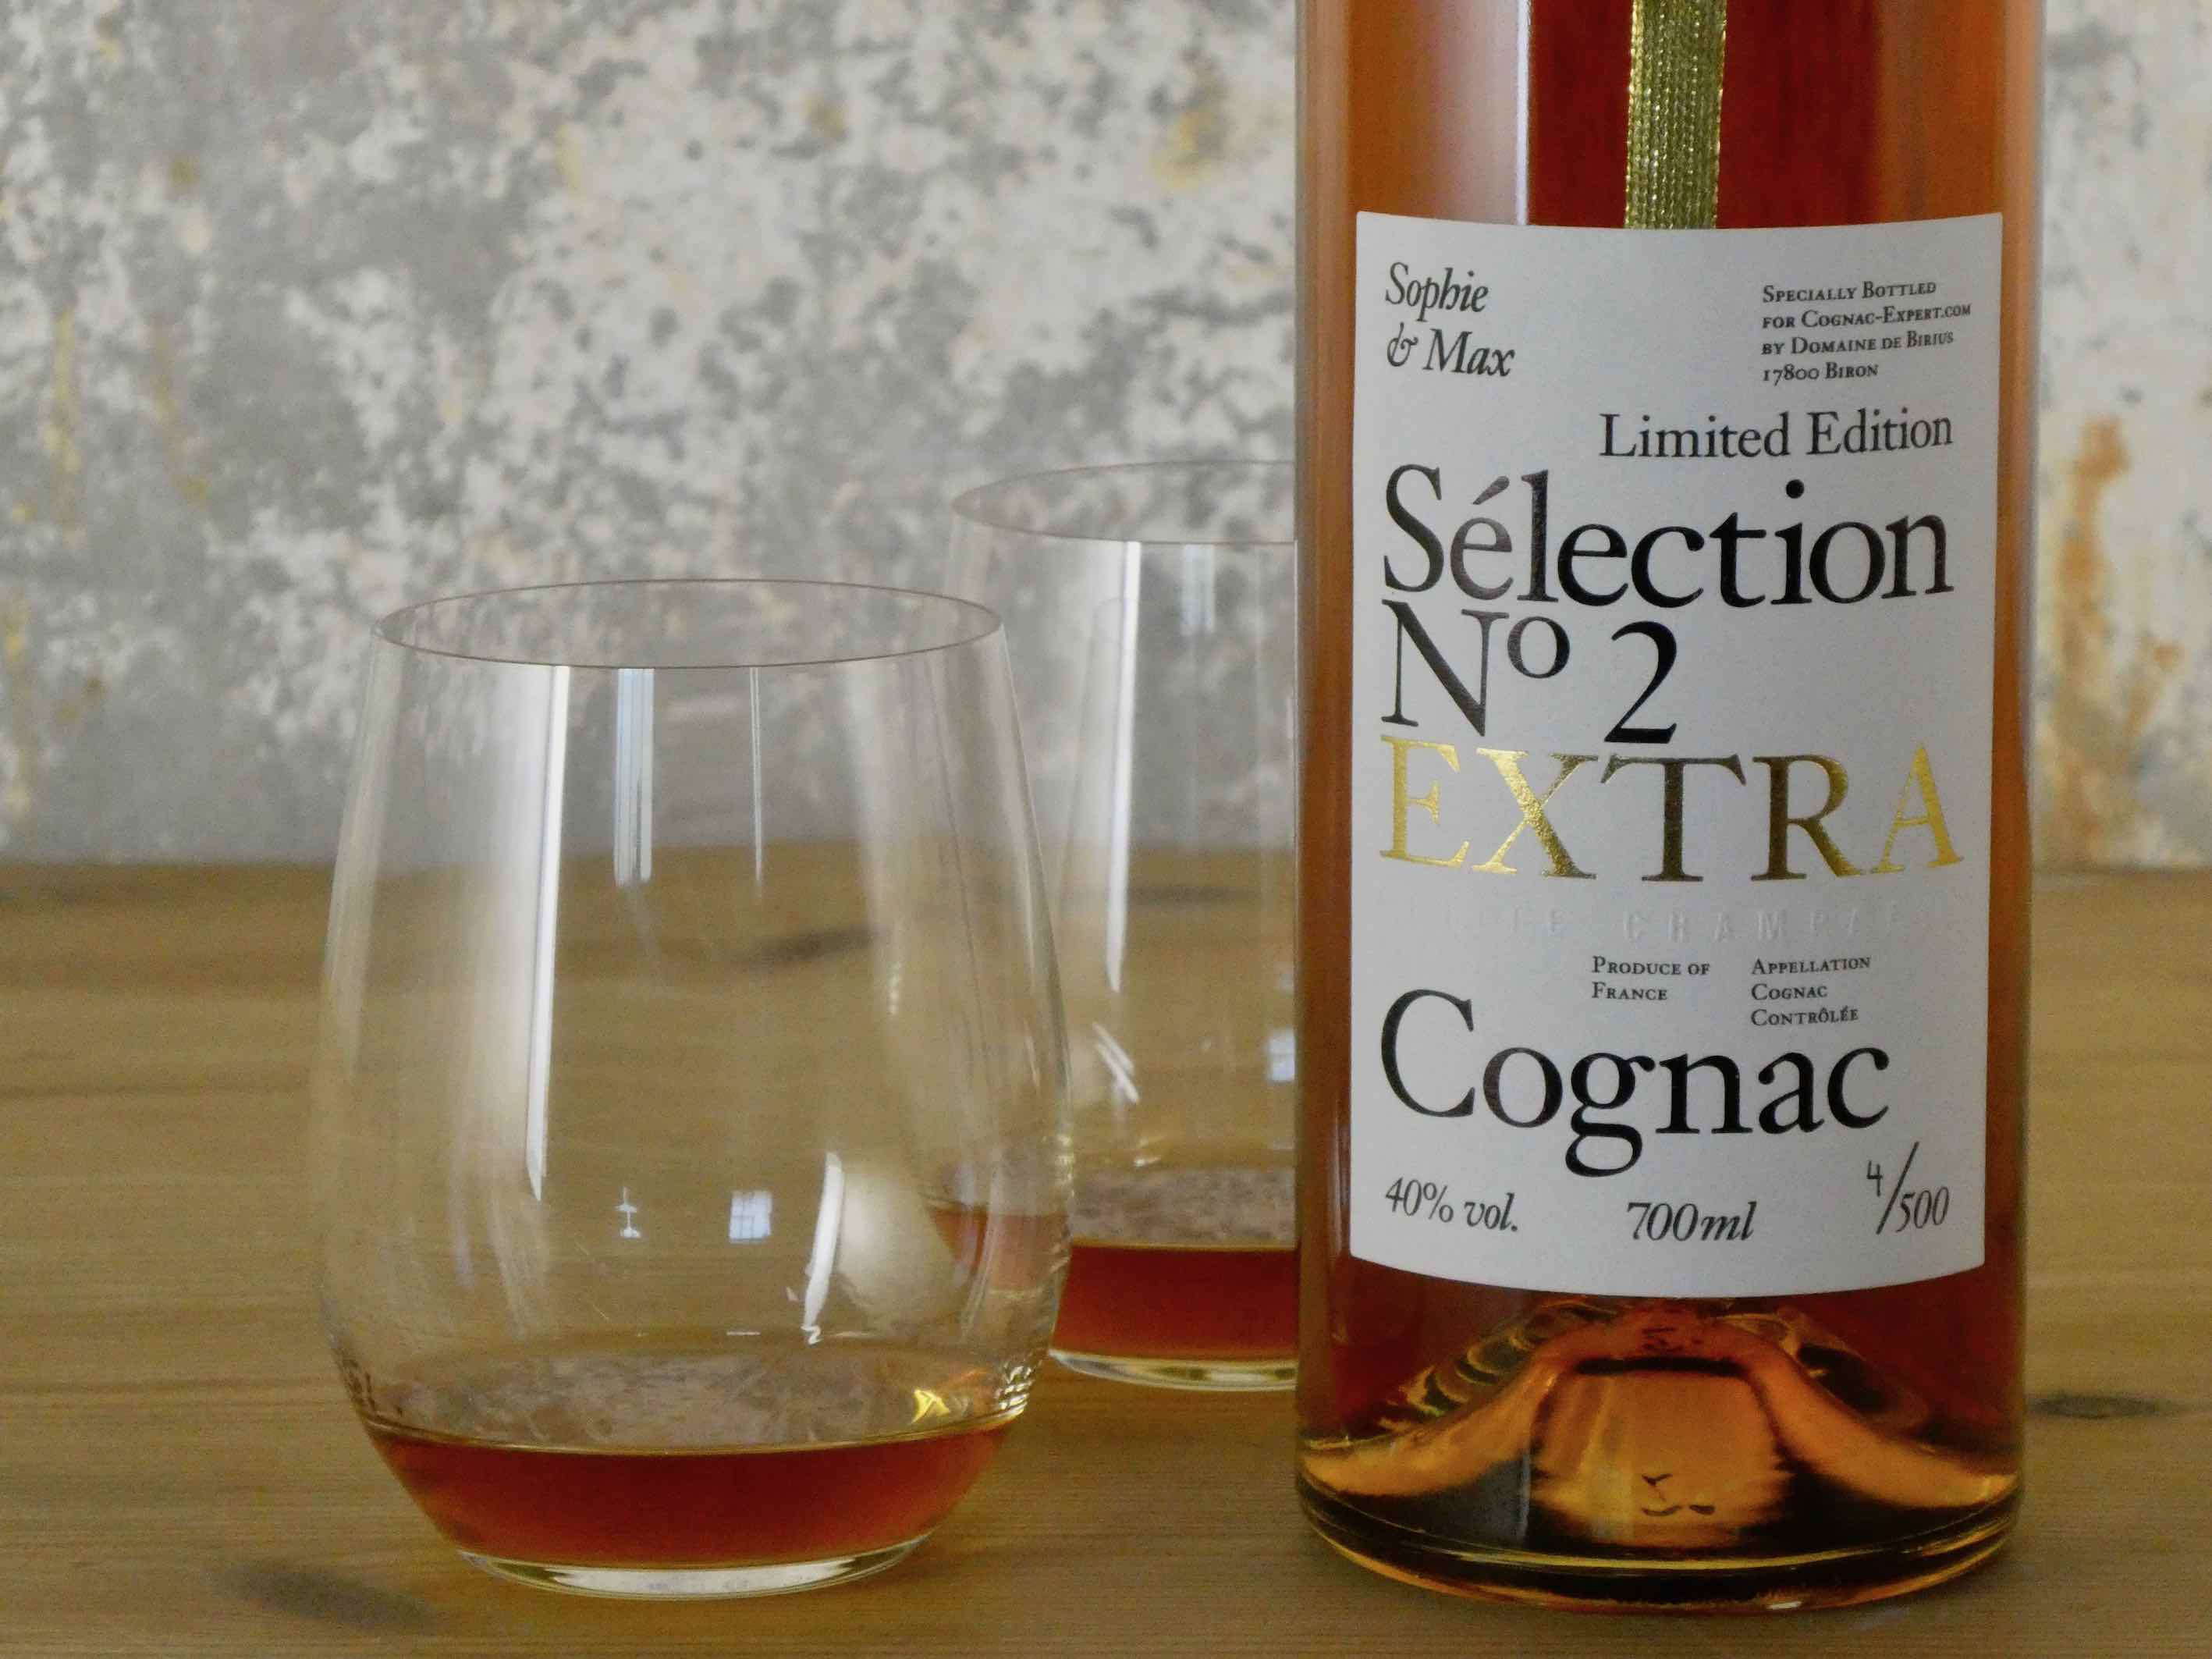 Launching a New Cognac: Sophie & Max Sélection N° 2 Limited Edition